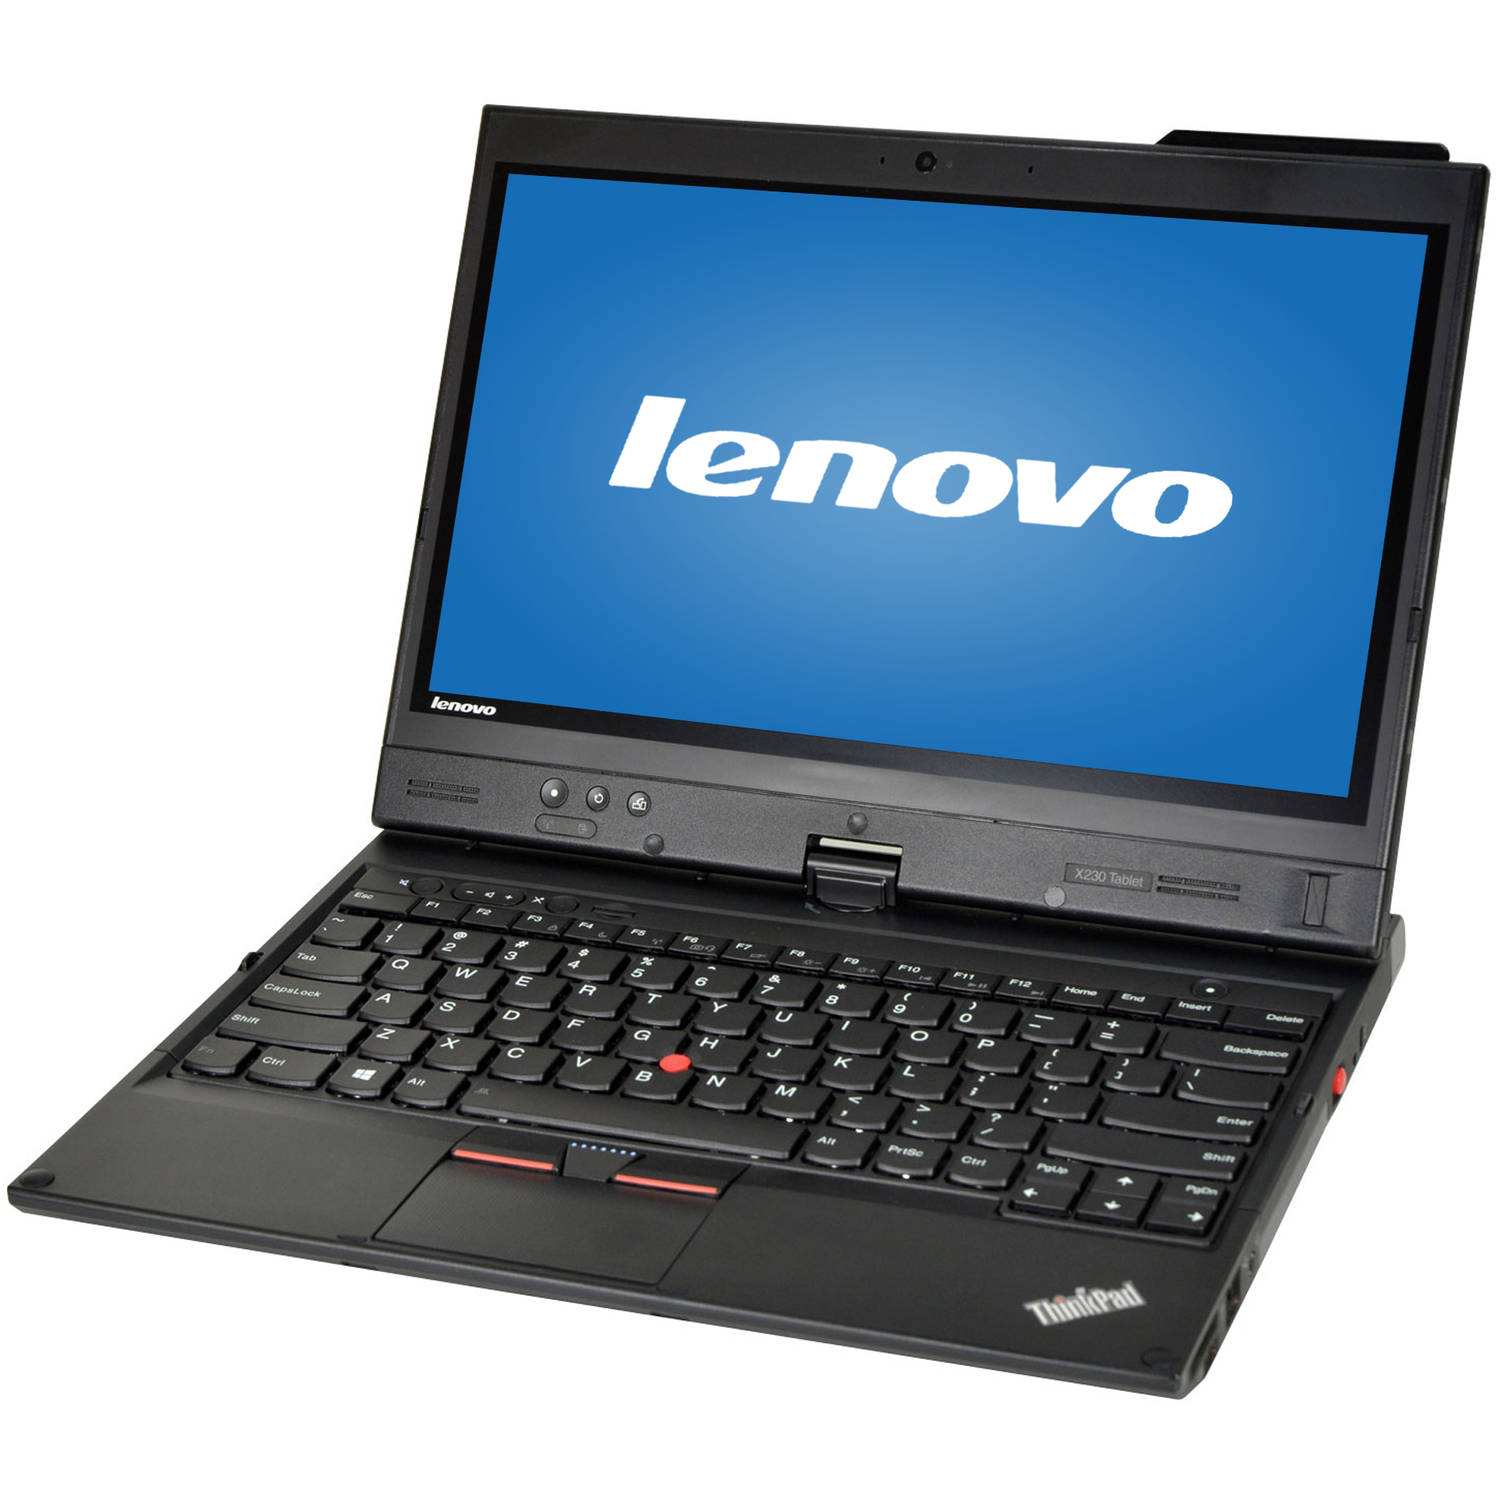 Lenovo Thinkpad X230T 13-INCH Convertible 2 IN 1 Touchscr...